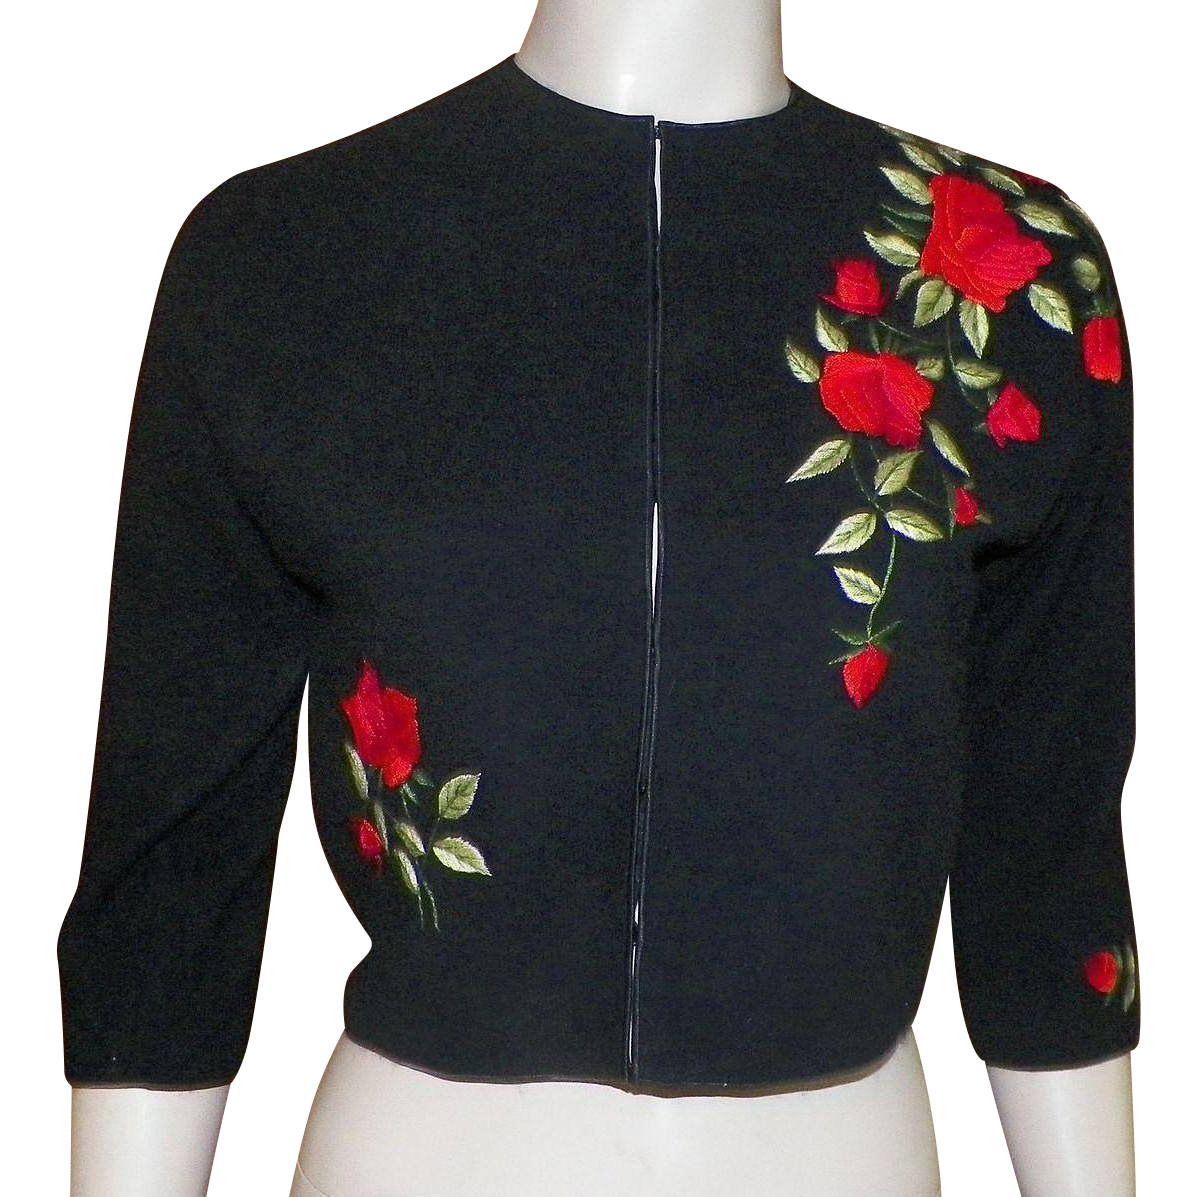 Vintage 1960s Black Wool Sweater With Embroidered Red Roses Ruby